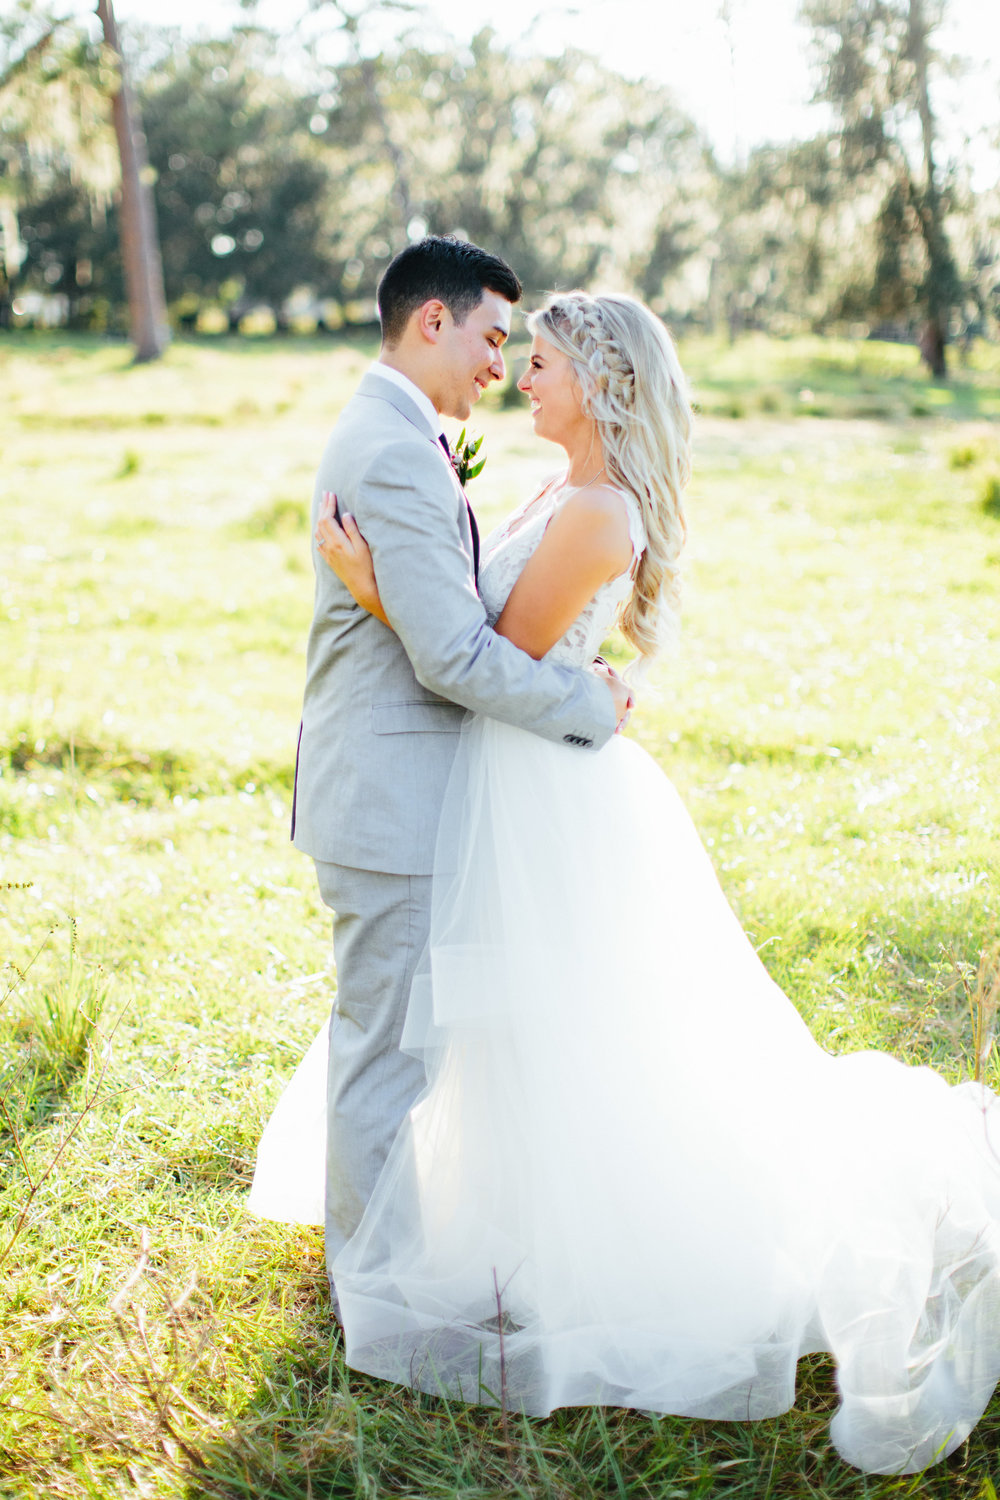 Tampa Florida Wedding Photographer | Benjamin Hewitt Photography